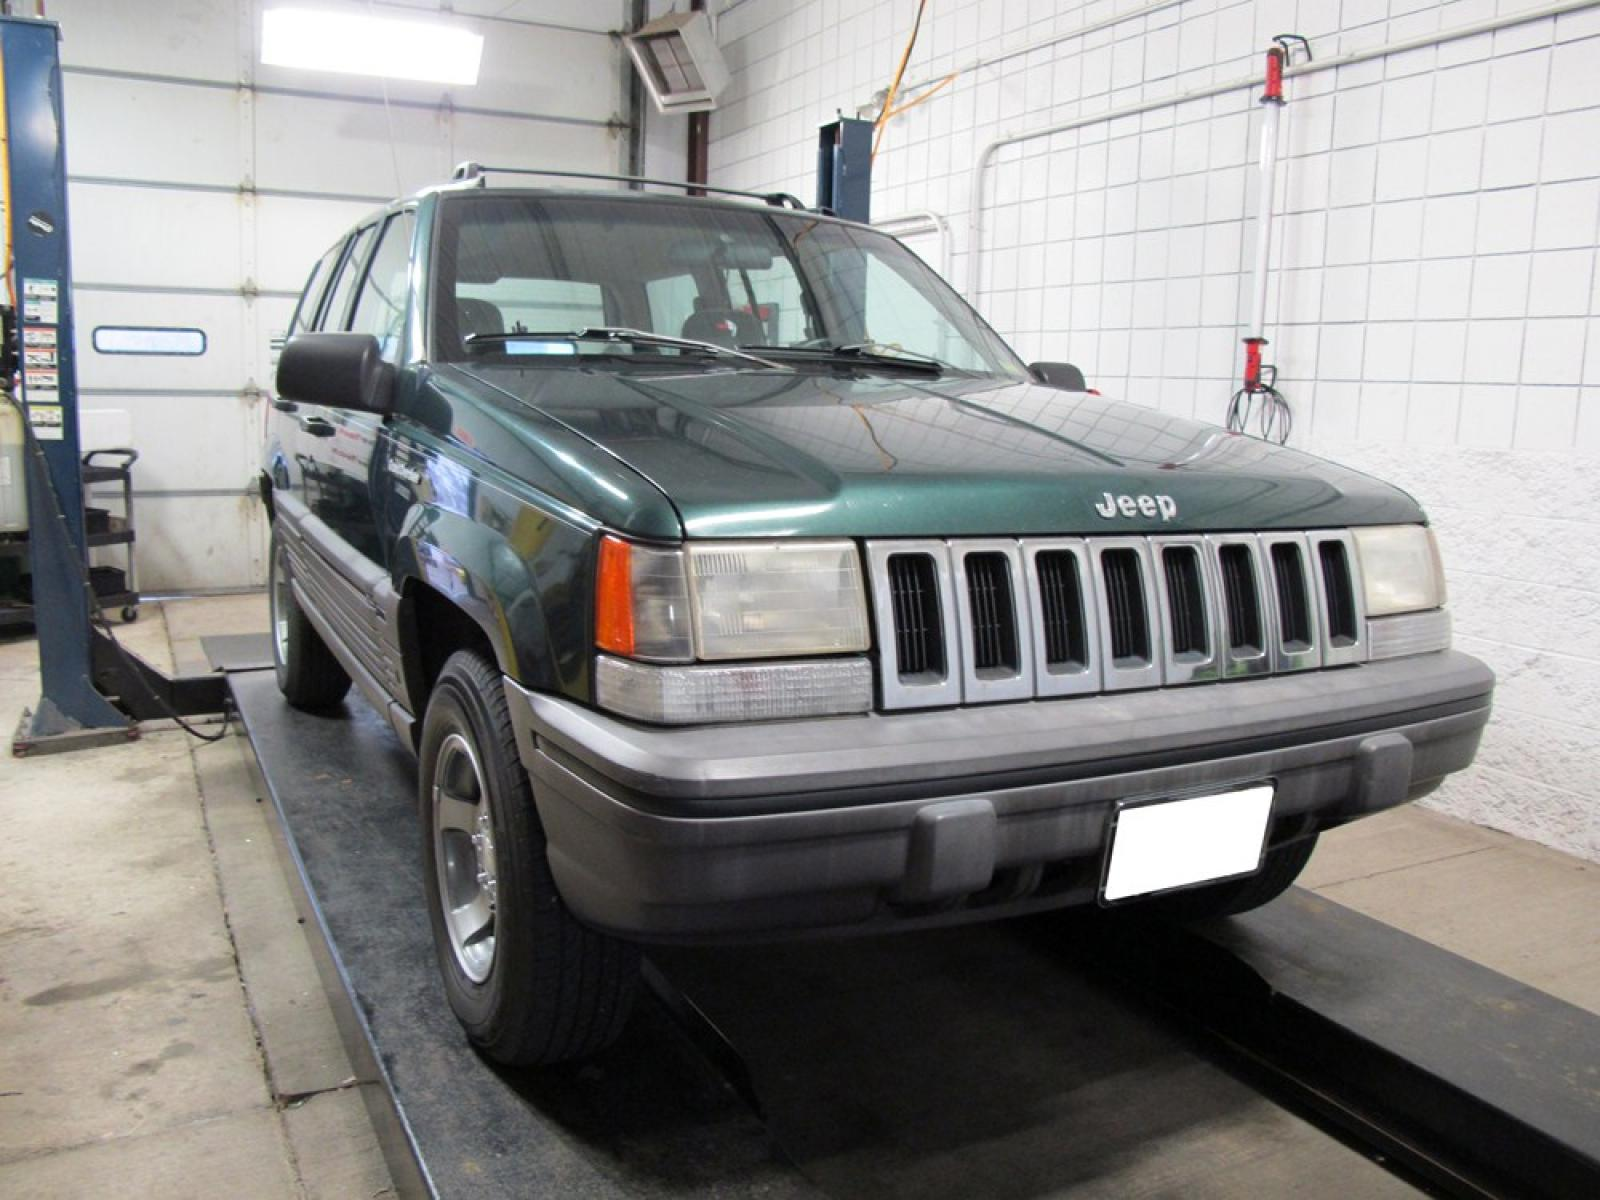 hight resolution of 800 1024 1280 1600 origin 1993 jeep 1993 jeep grand cherokee